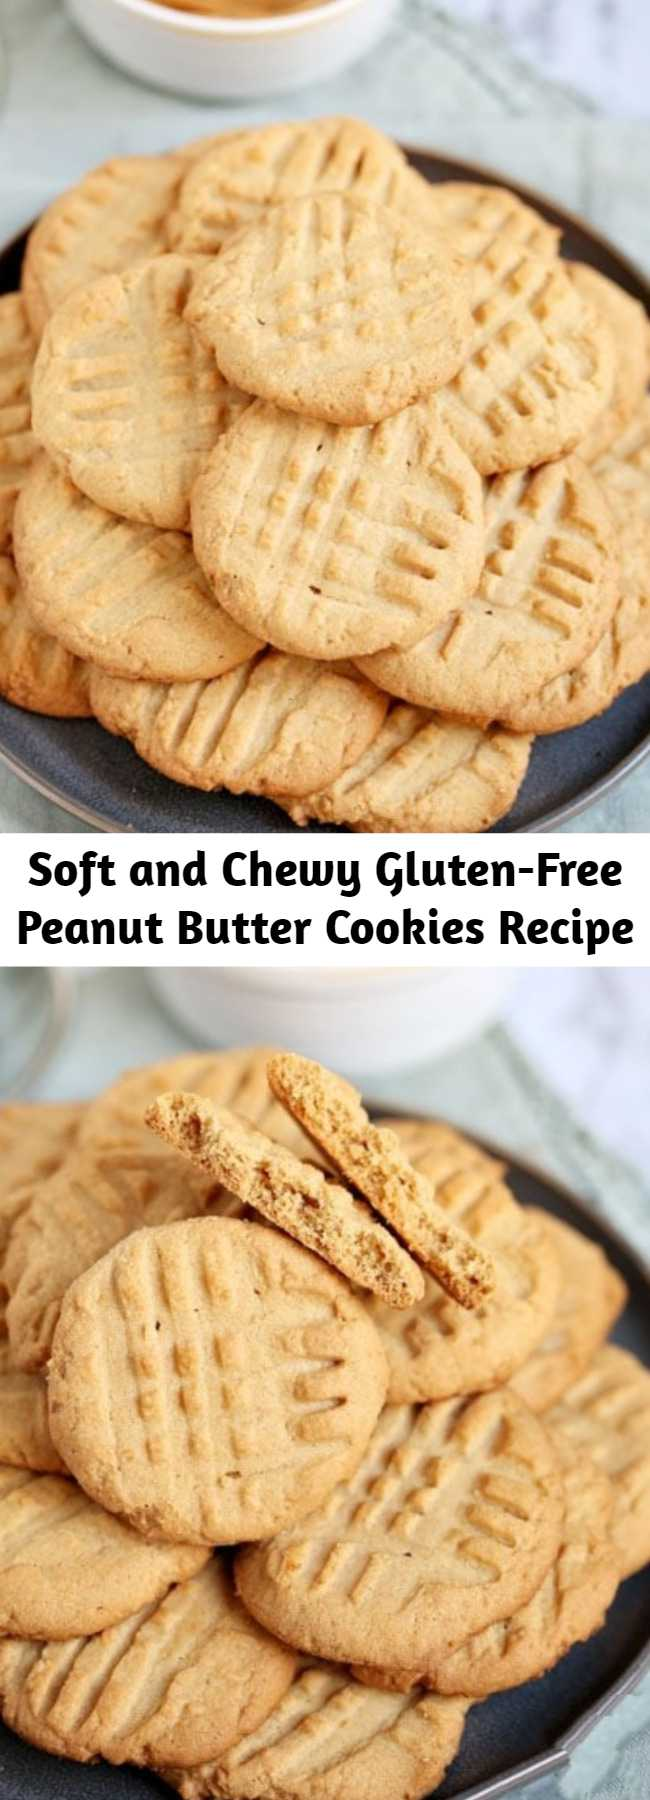 Soft and Chewy Gluten-Free Peanut Butter Cookies Recipe - This easy recipe uses common ingredients that make a peanut butter cookie so delicious, no one will guess it's gluten-free! Unlike many GF cookie recipes, these gluten free peanut butter cookies are delicious and chewy, not dry and crumbly.